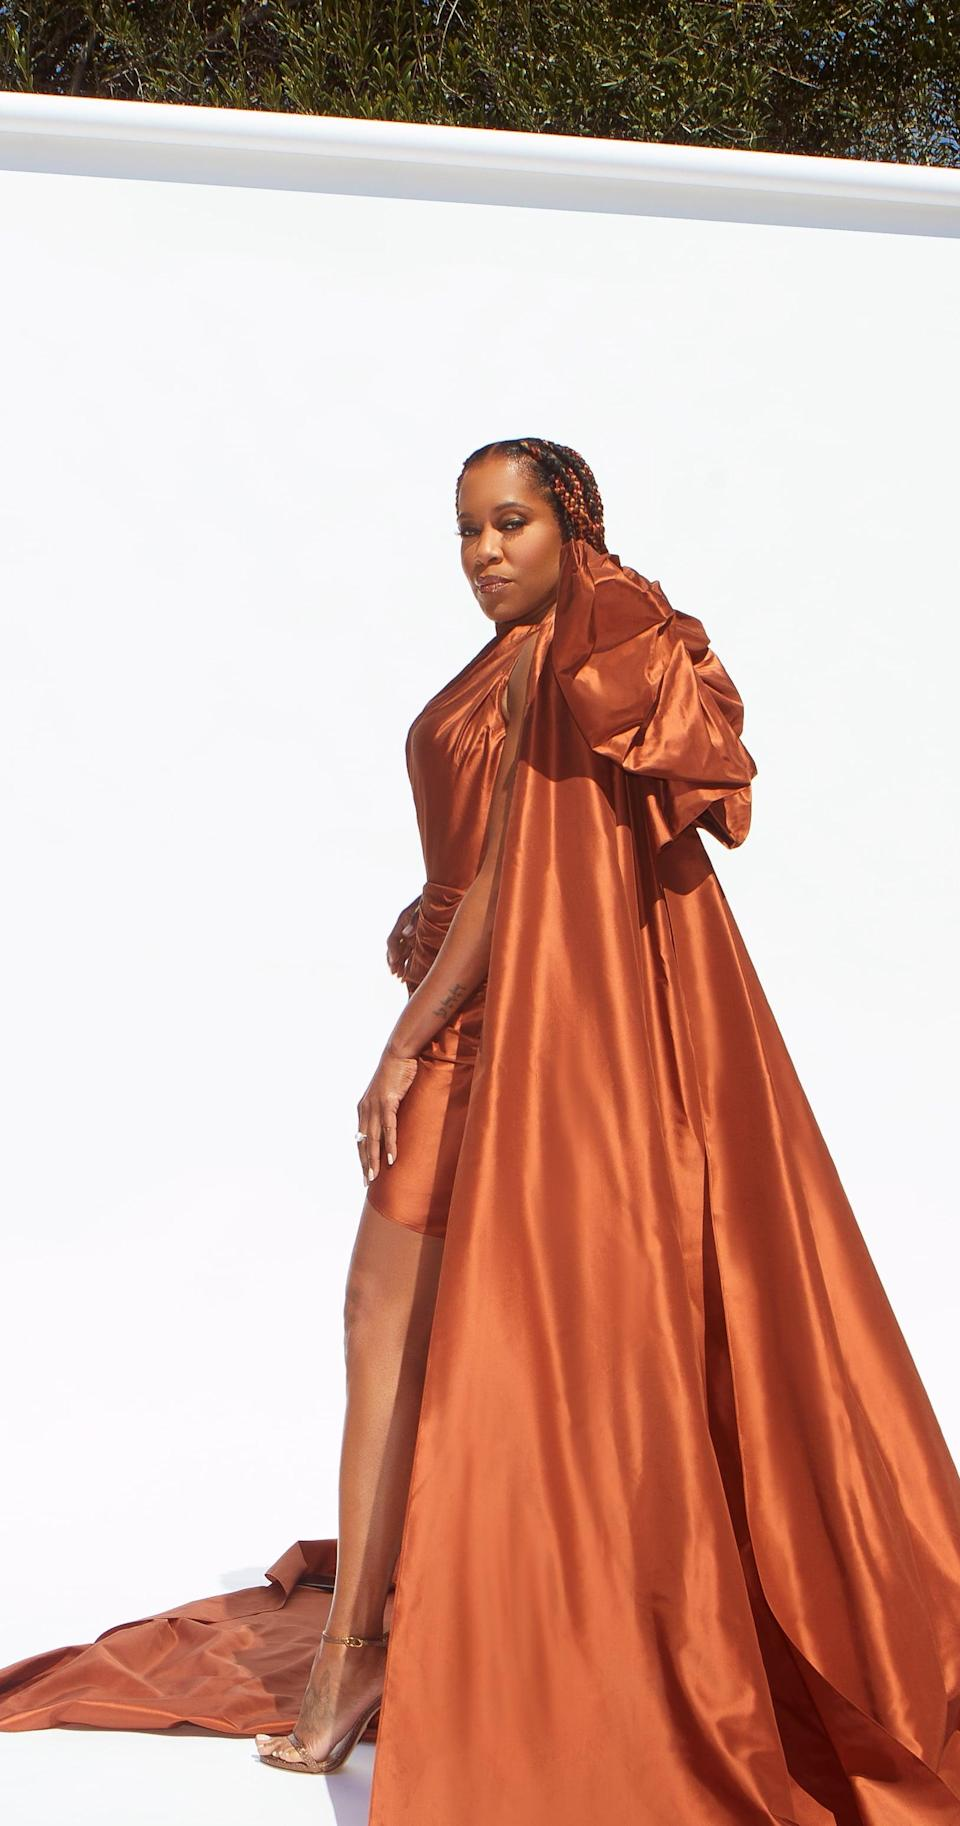 Regina King's Dramatic Gown at the NAACP Image Awards Is Even Better From the Back